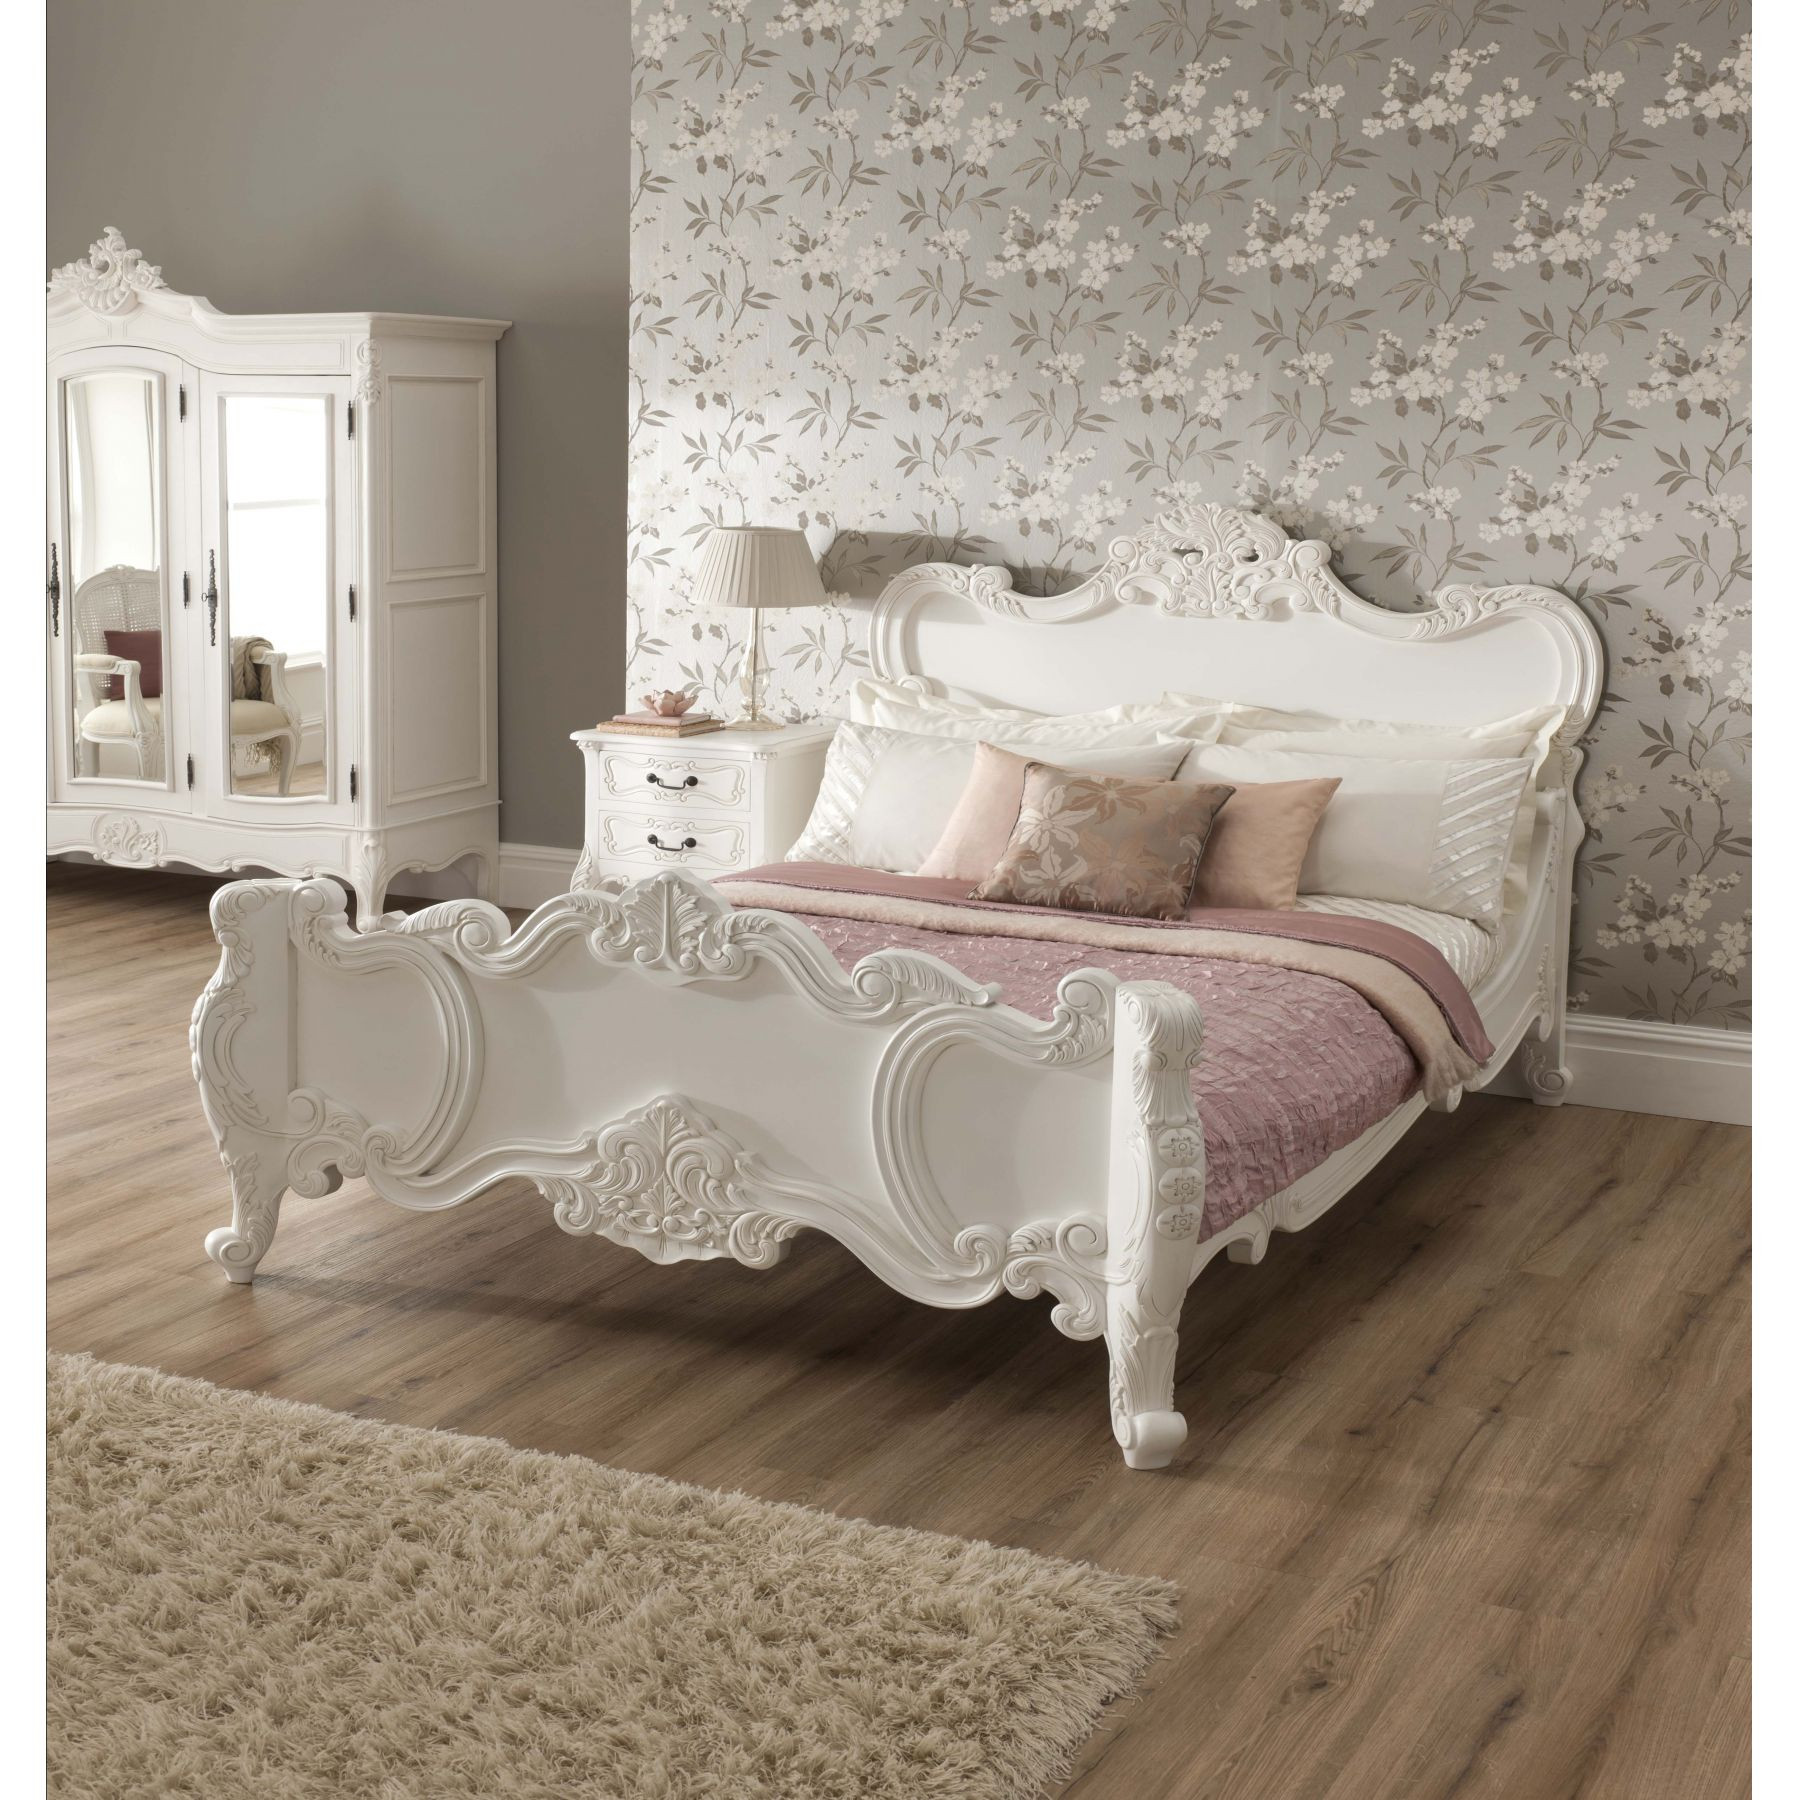 Shabby Chic Bedroom Furniture  Vintage Your Room with 9 Shabby Chic Bedroom Furniture